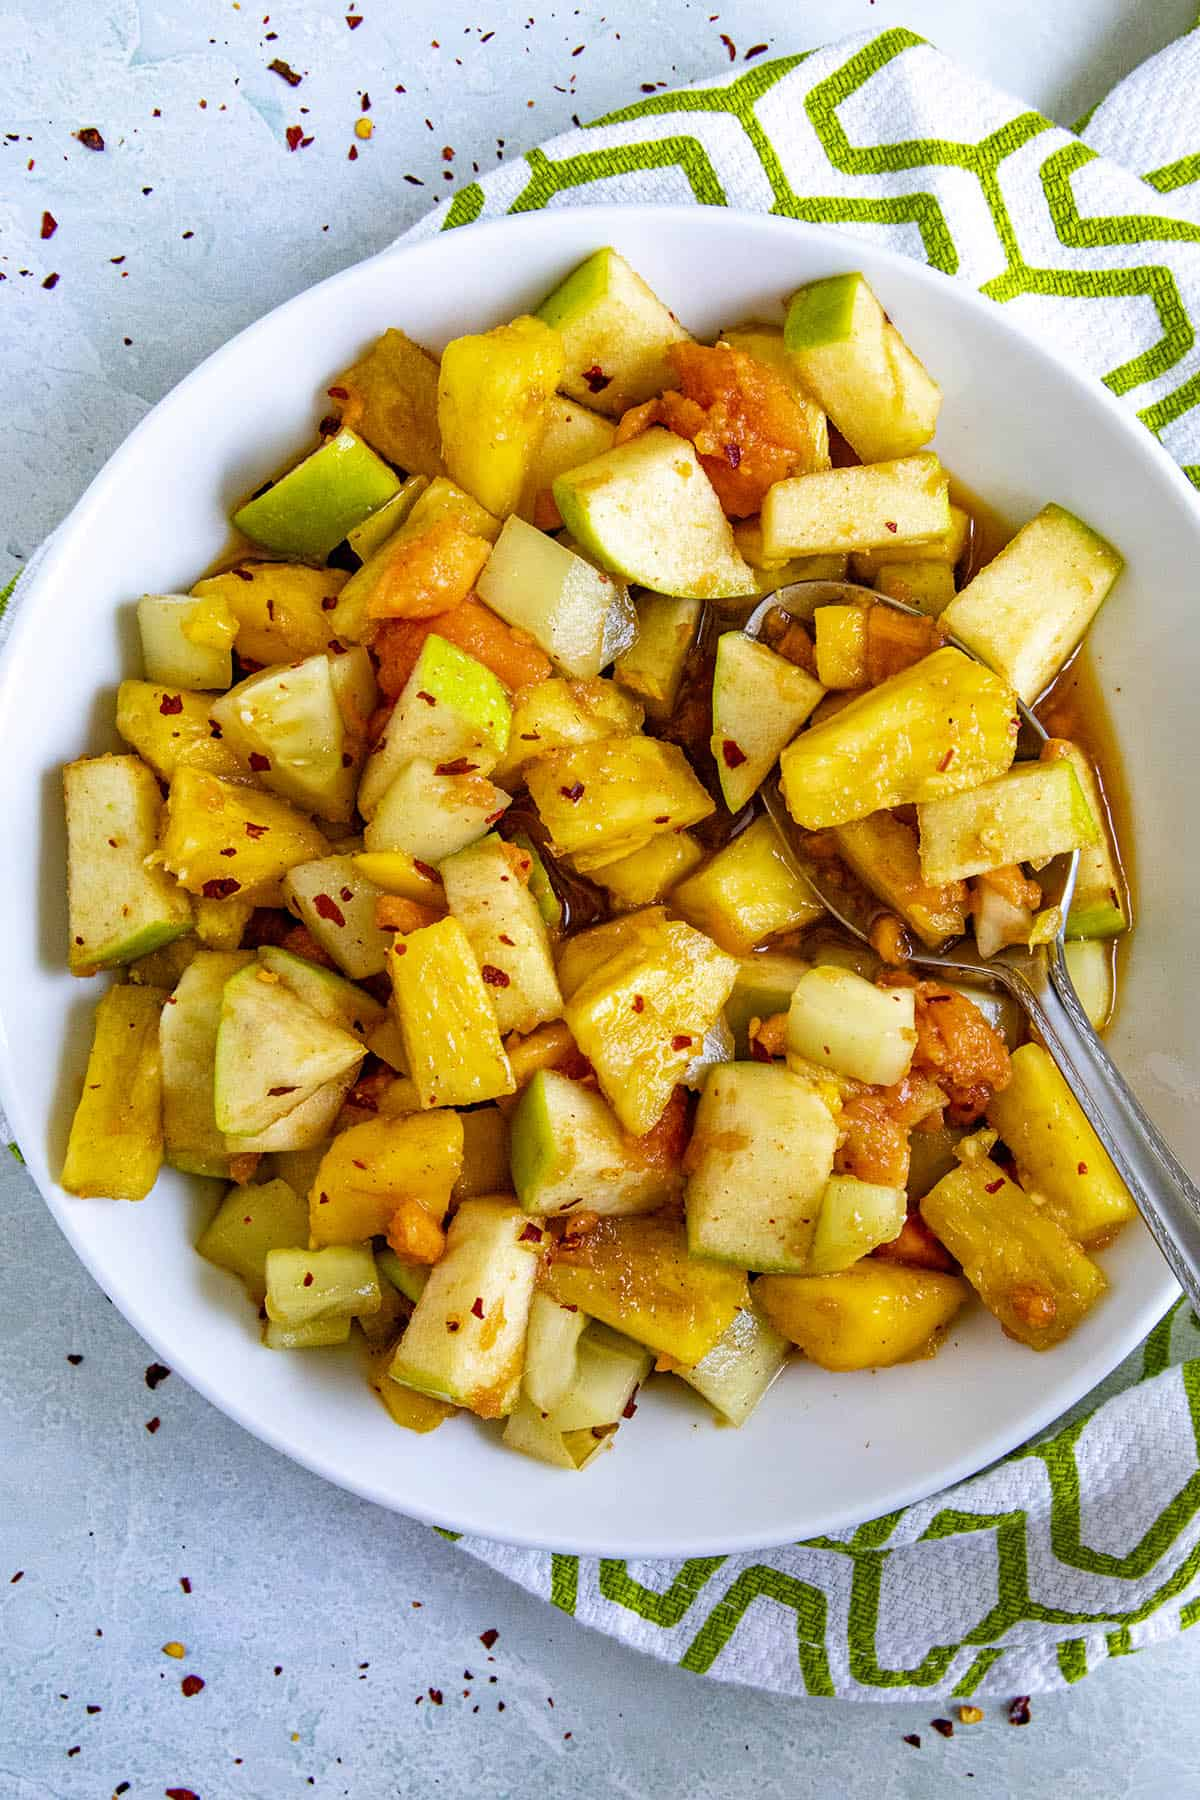 Rujak (Indonesian fruit salad) in a bowl with a spoon